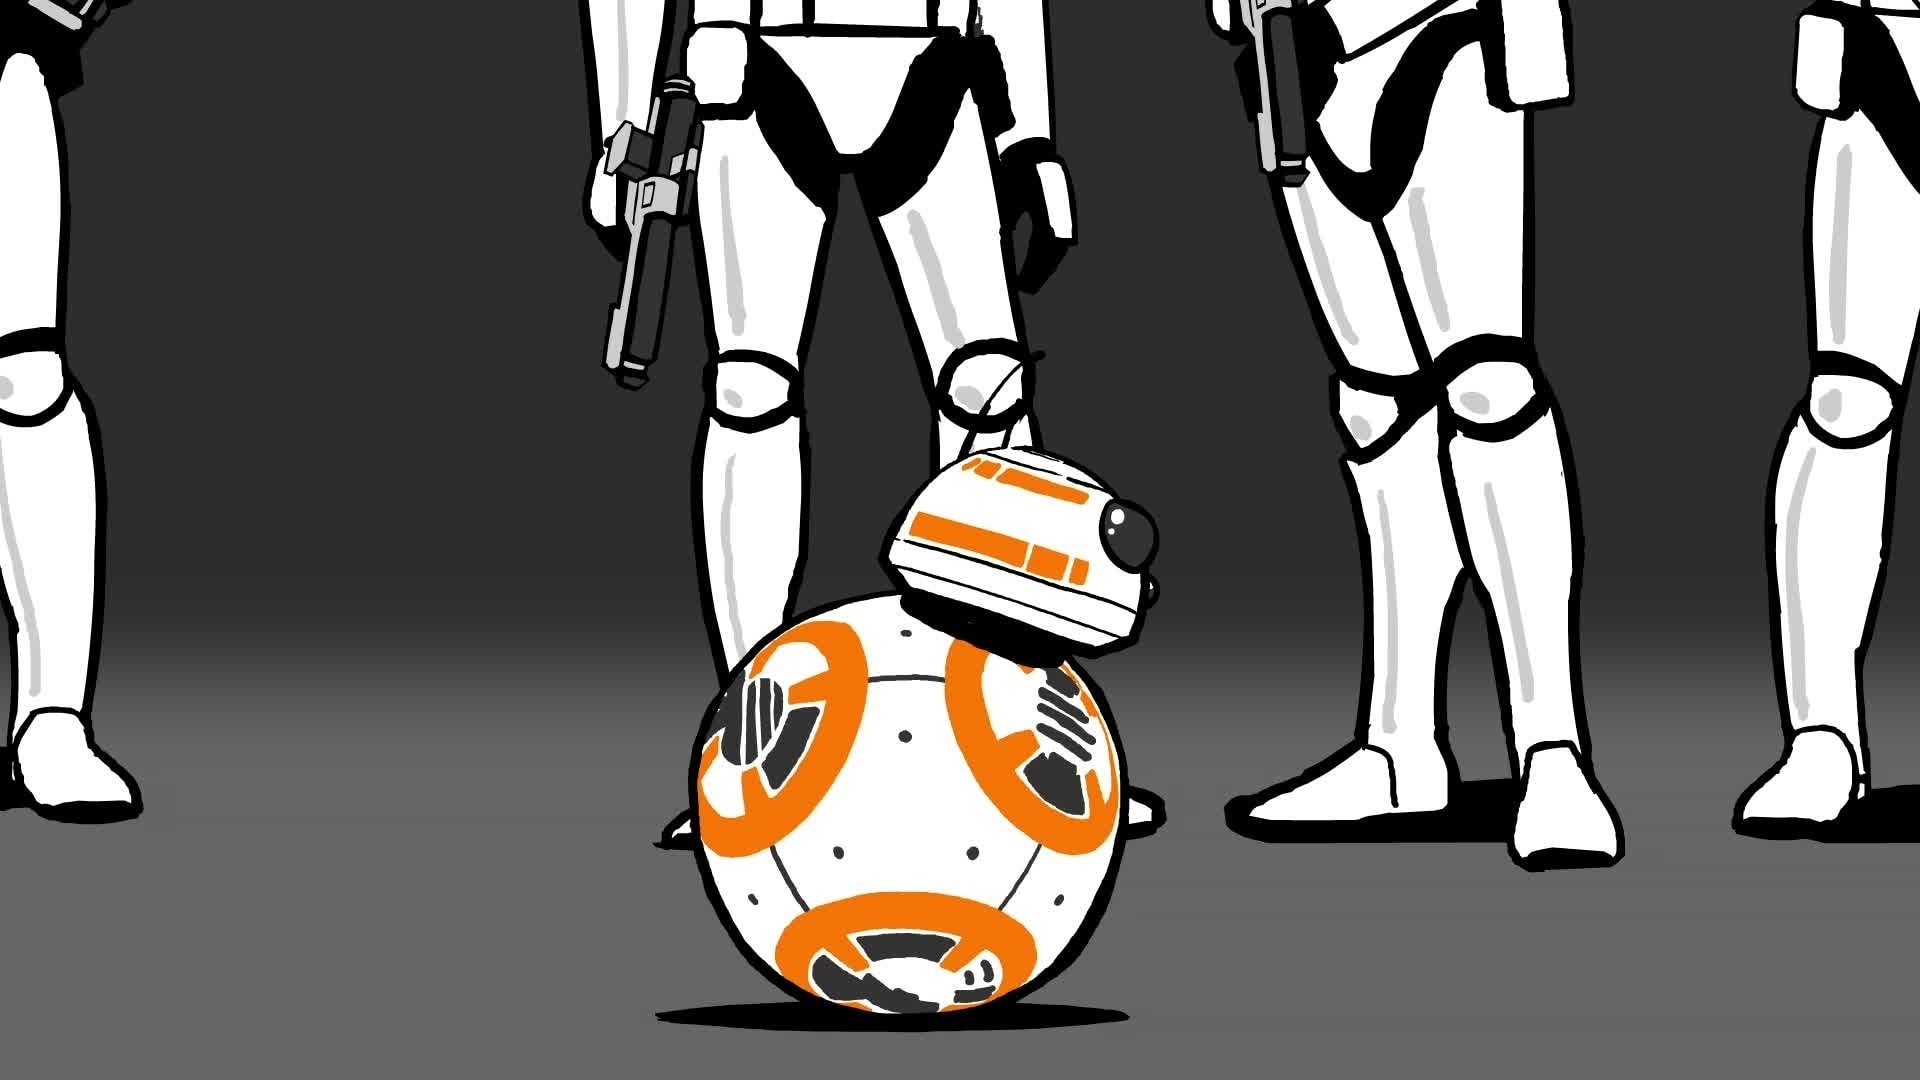 Star Wars : La Pause BB-8 - La course-poursuite